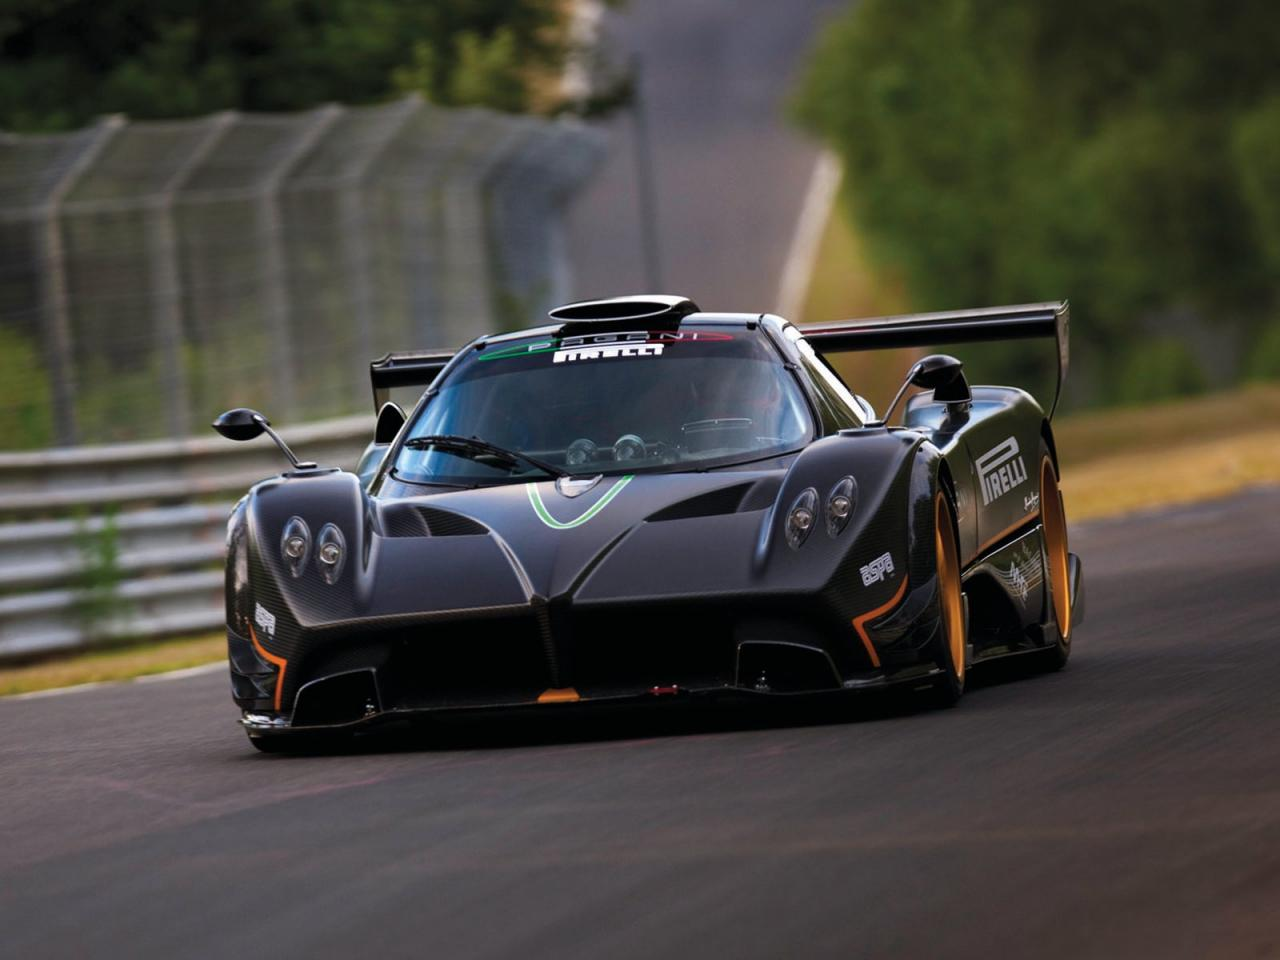 pagani zonda r nurburgring record run video and pictures autoevolution. Black Bedroom Furniture Sets. Home Design Ideas